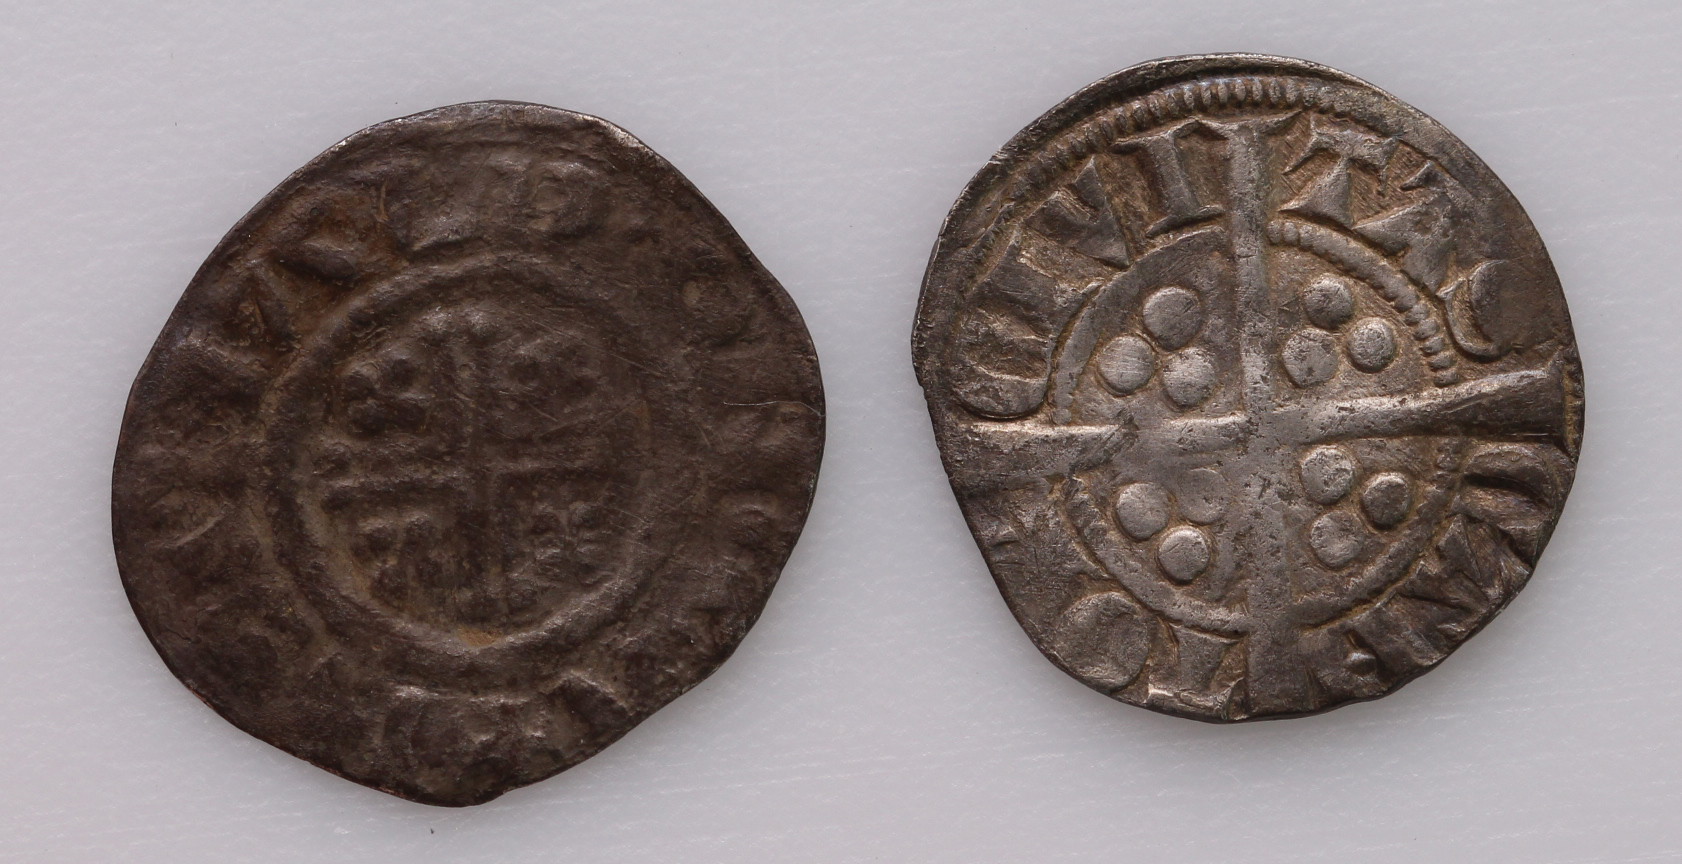 Canterbury Mint Pennies (2): Richard I Class 4b, S.1348C, REINALD ON CA, 1.26g, VG, along with - Image 2 of 2